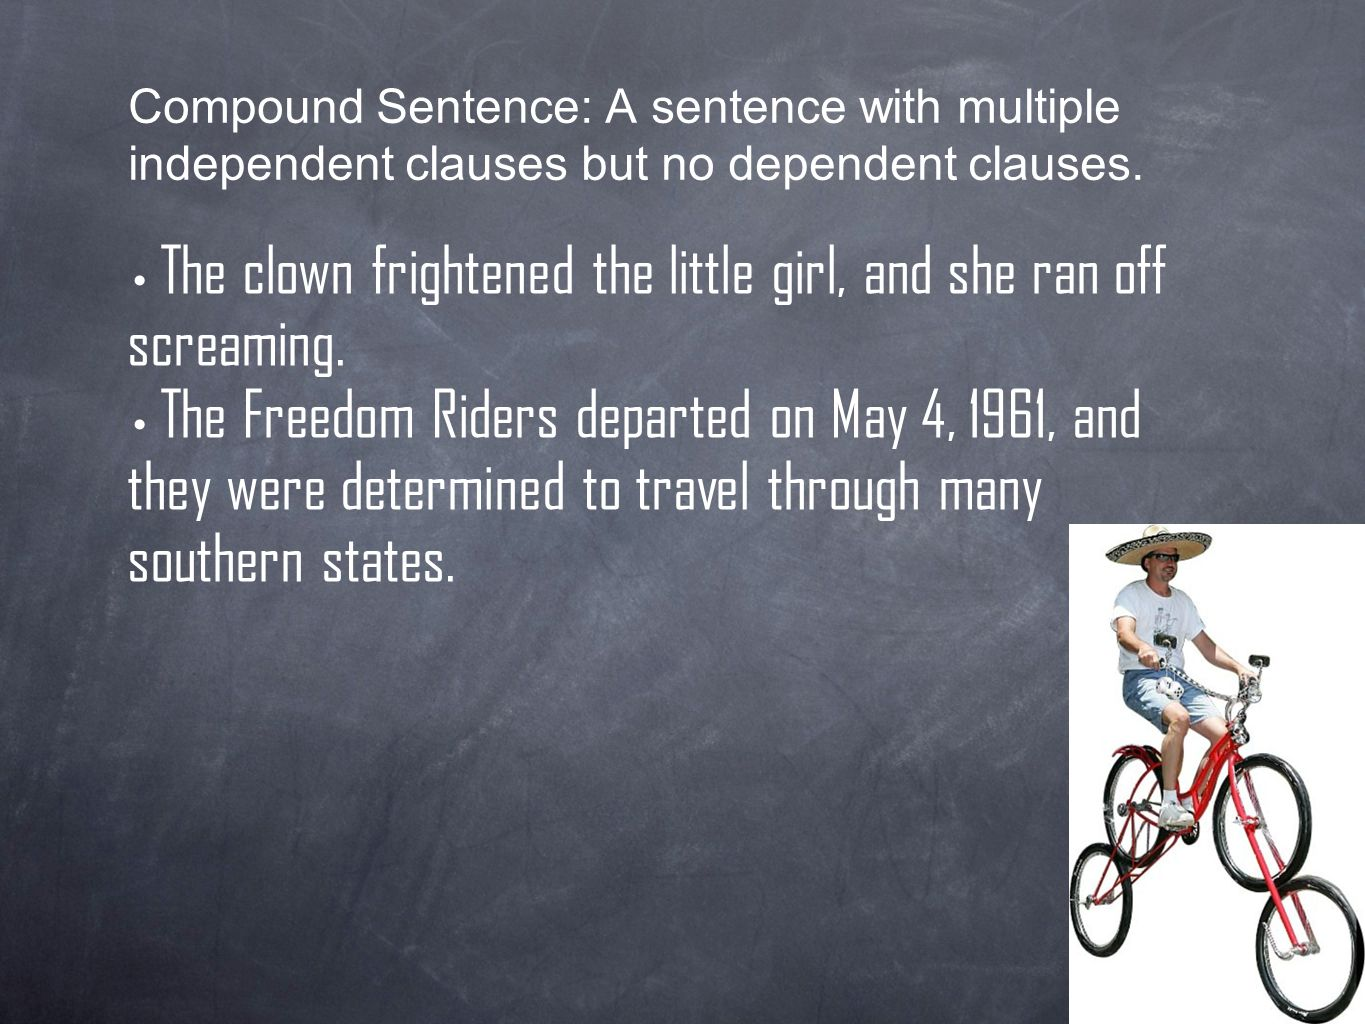 Compound Sentence: A sentence with multiple independent clauses but no dependent clauses.